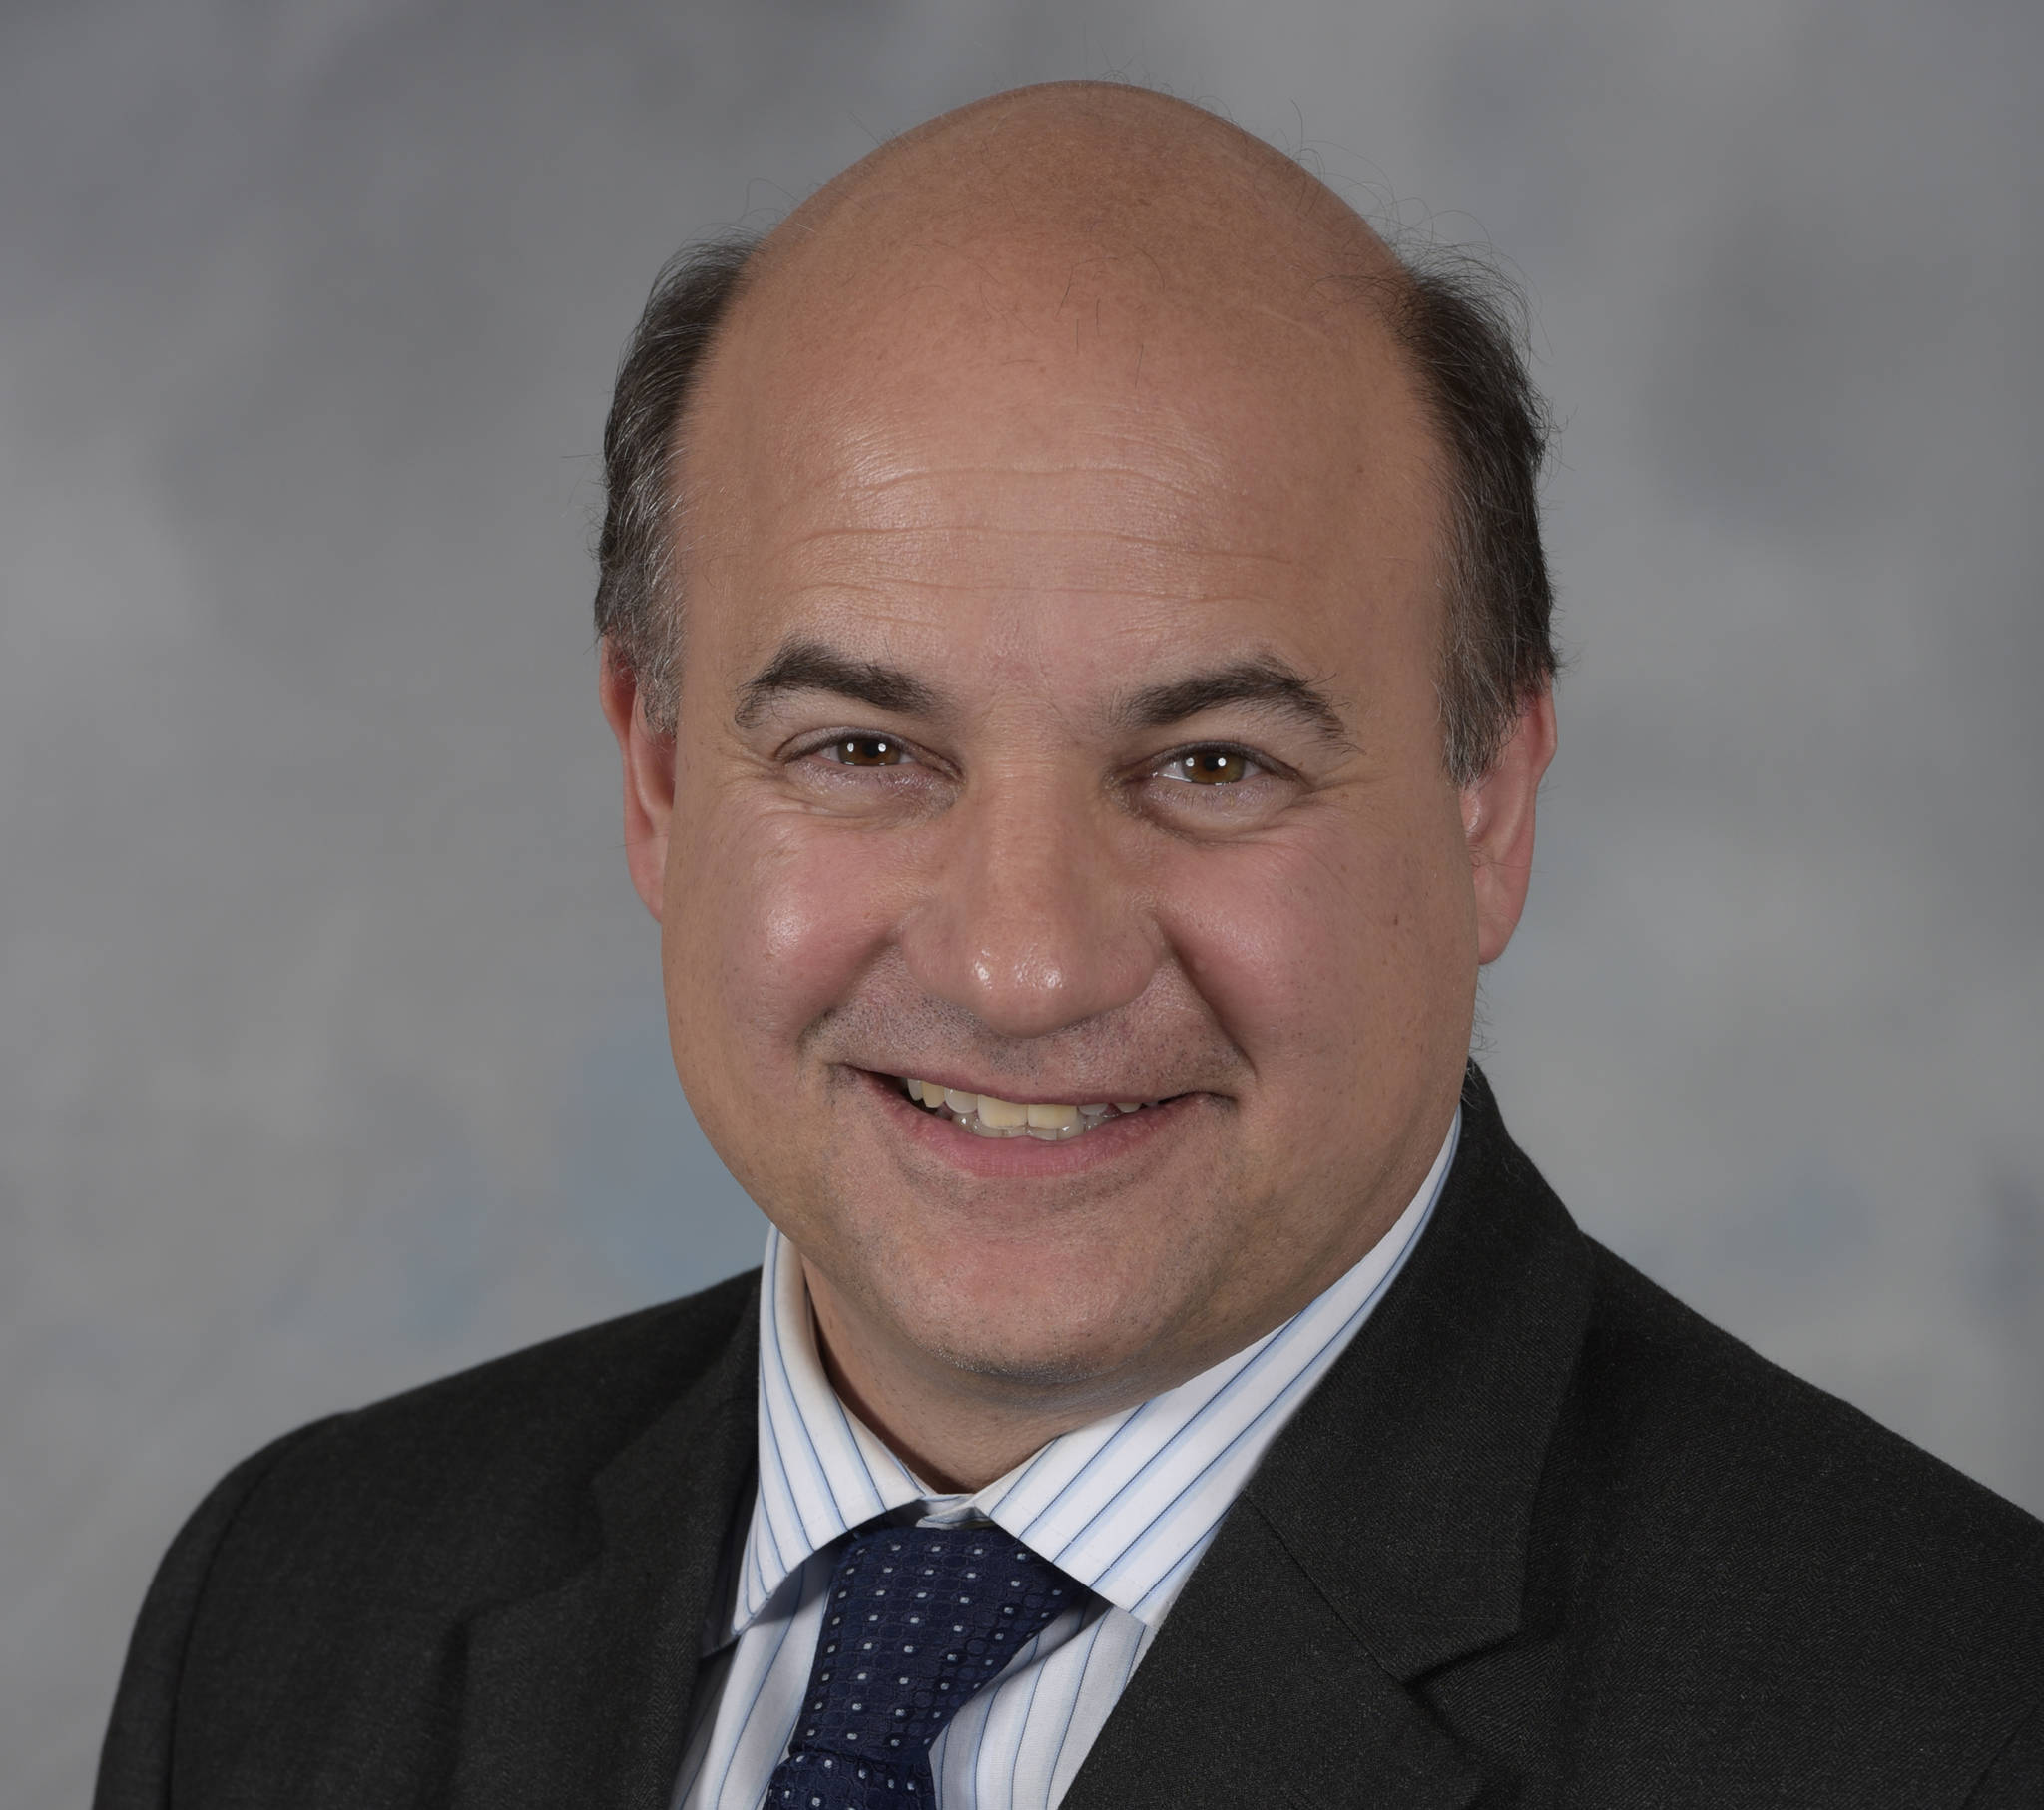 Russell Read, chief investment officer of the Alaska Permanent Fund Corporation, is seen in an August 2016 photo provided by the corporation. (Courtesy photo)